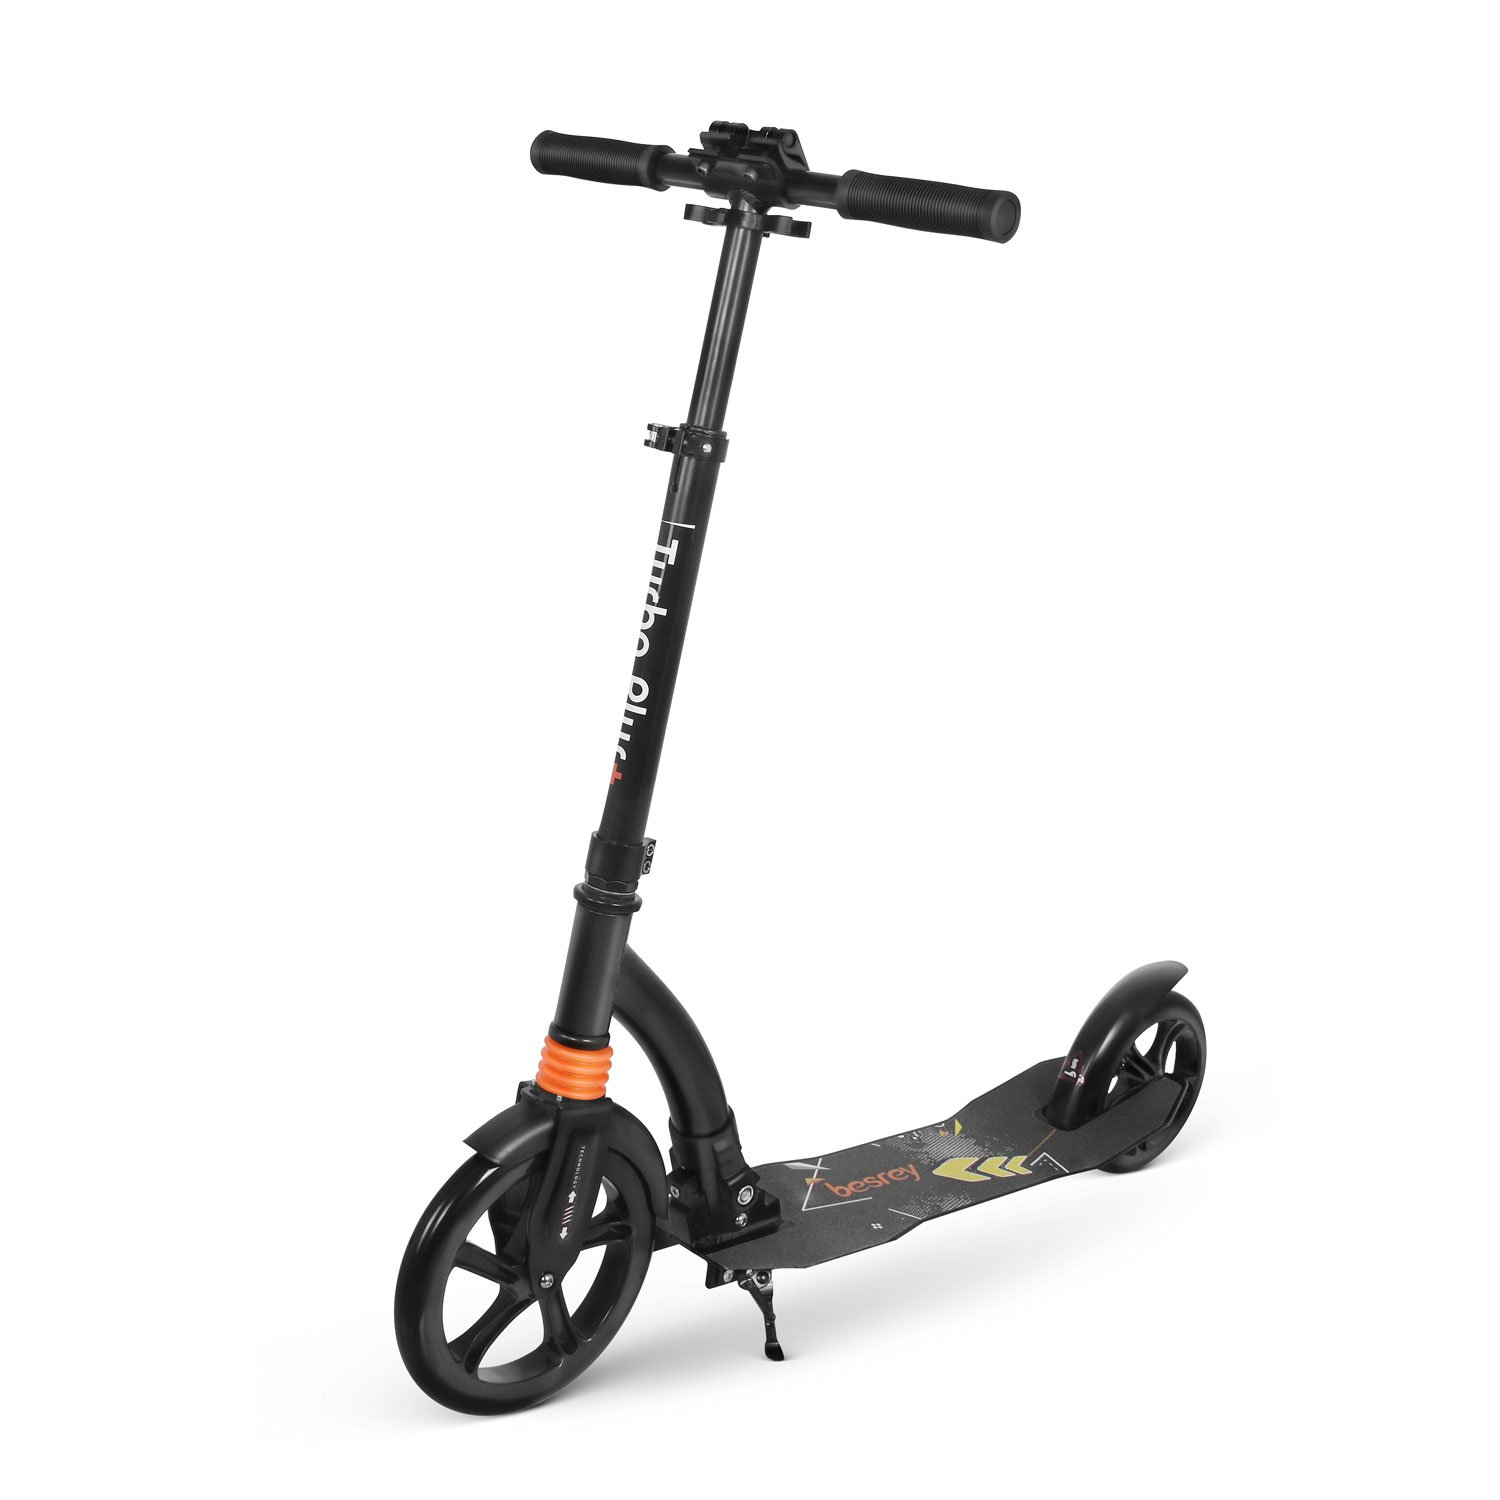 besrey Kick Scooter Big Wheel Scooter Foldable Scooter Adjustable Height Shock Absorption Kick Scooter for Kids